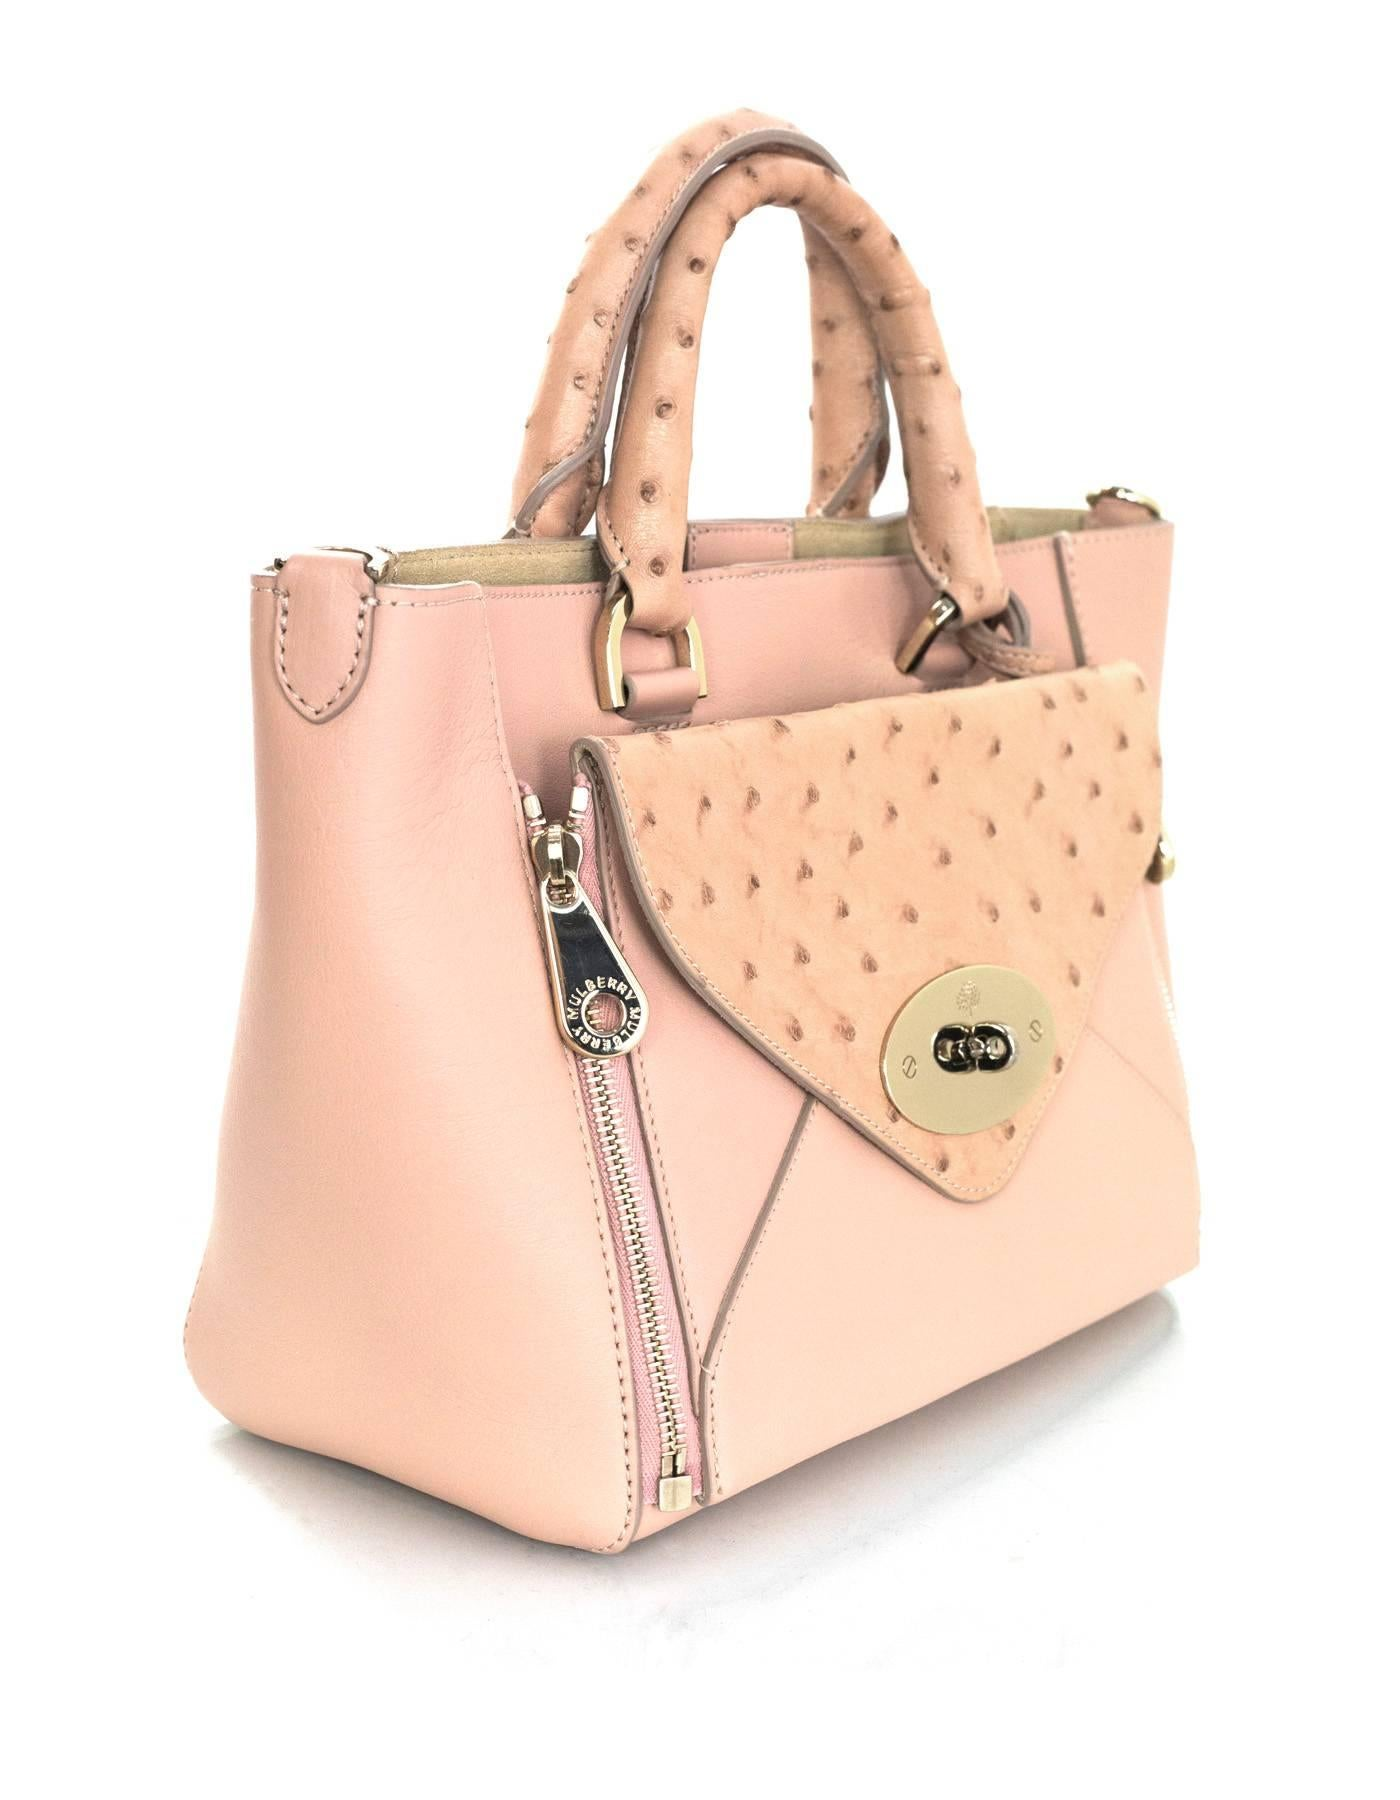 344b46a7c005 Mulberry Pink Leather and Ostrich Small Convertible Willow Tote Bag w/  Strap For Sale at 1stdibs